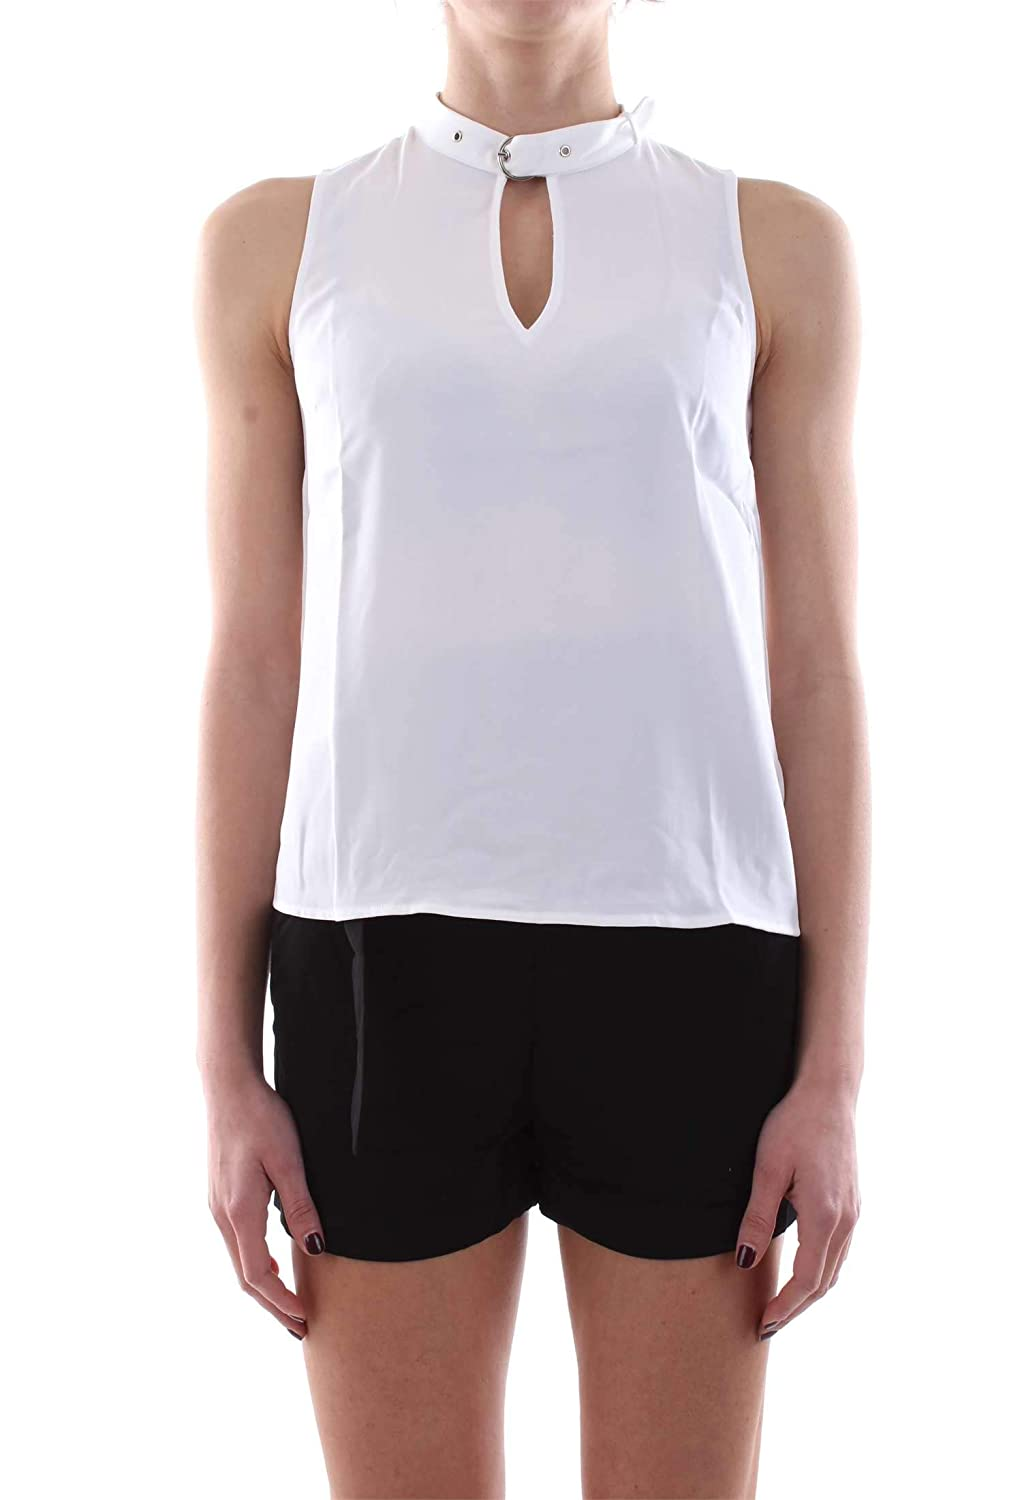 Guess SL Polly Top Canotta Donna